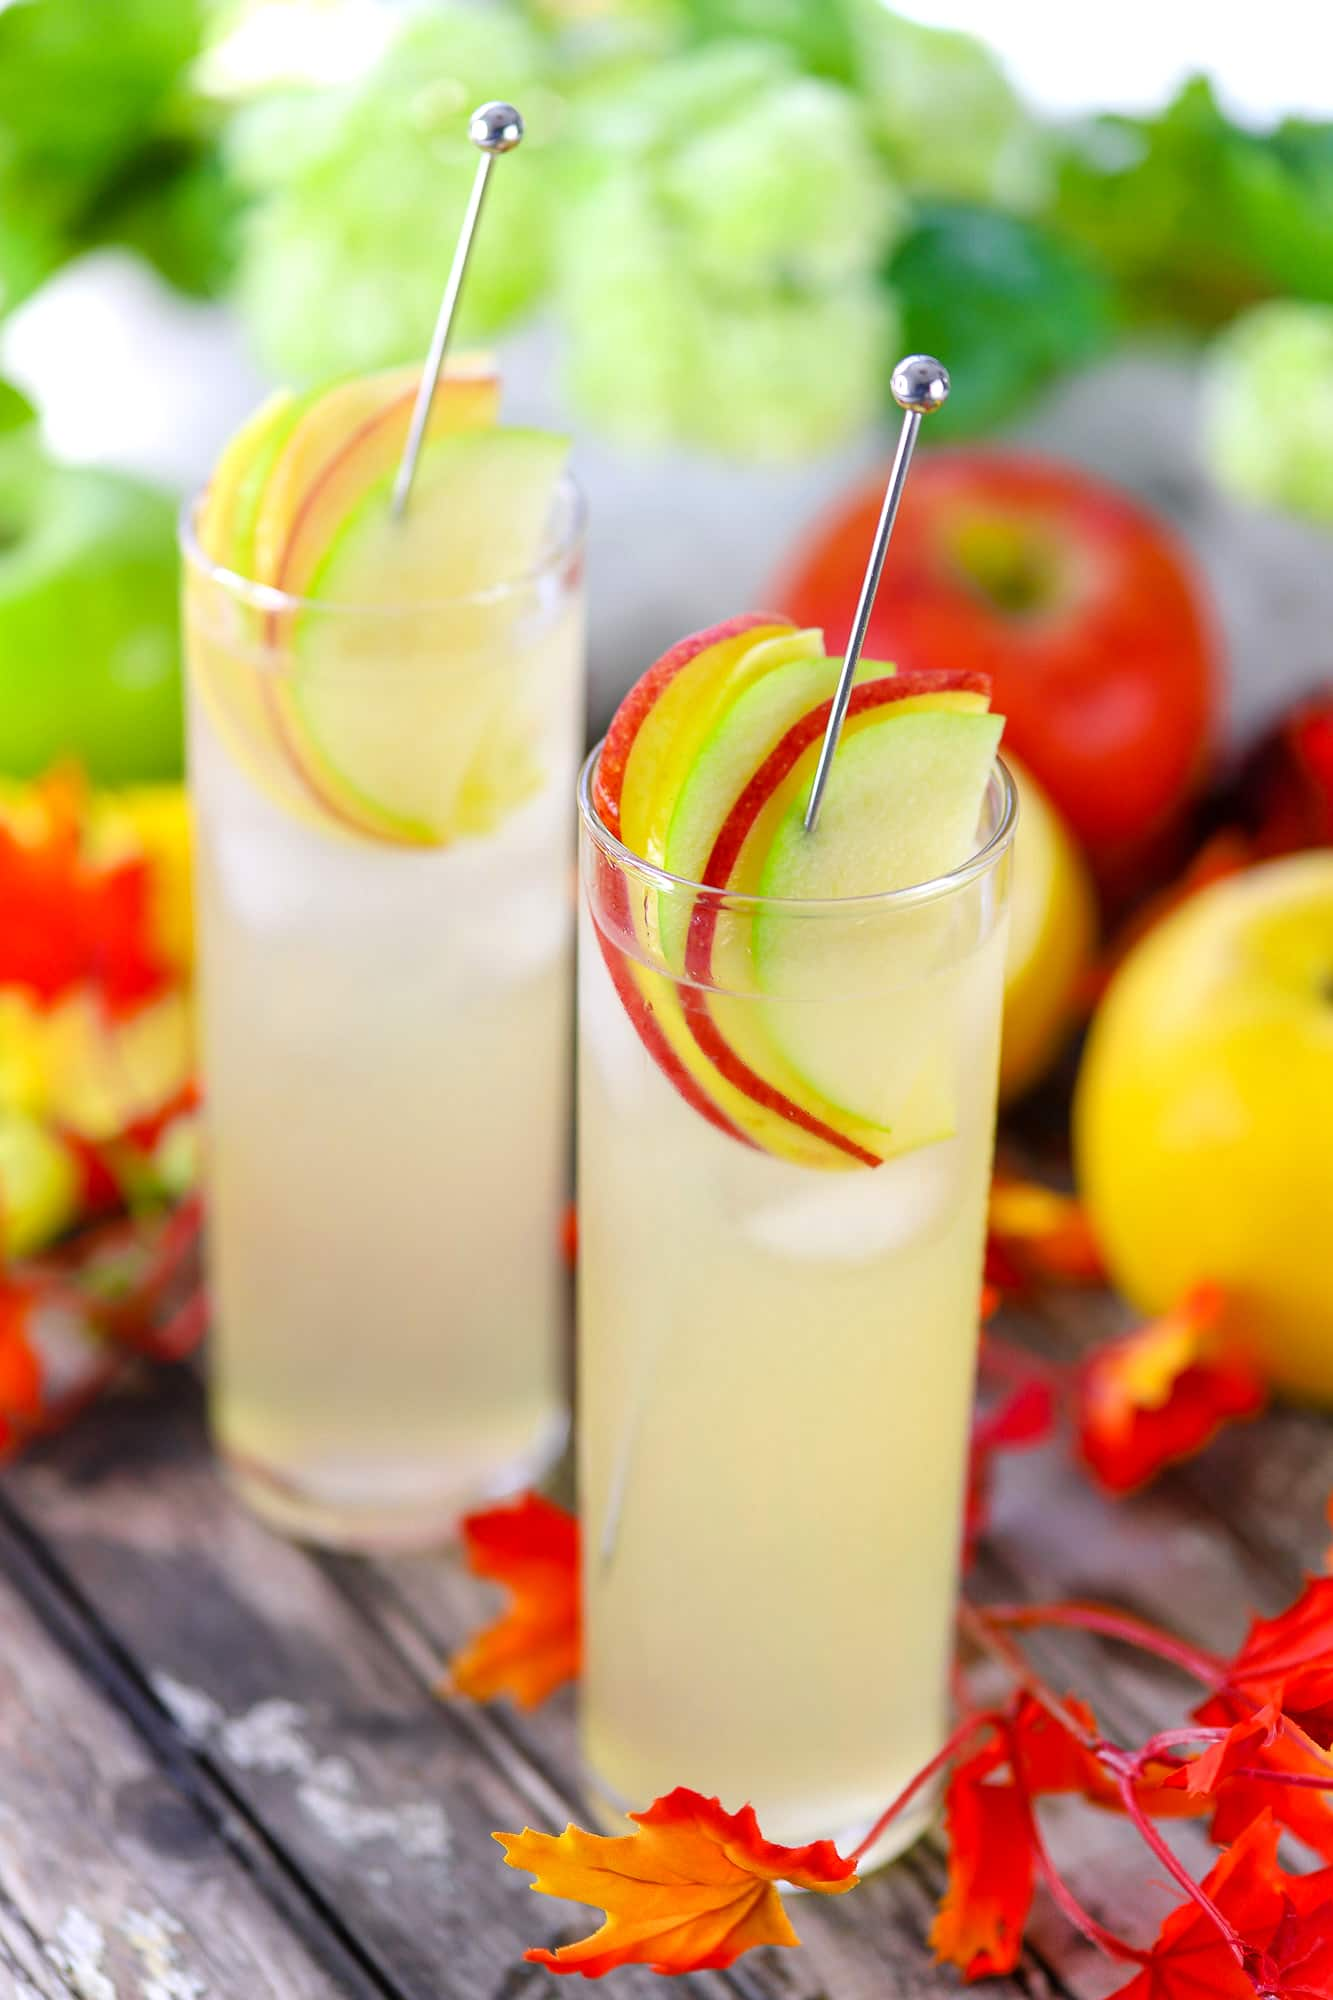 Two tall glasses of hard lemonade garnished with red, green, and yellow apple slices